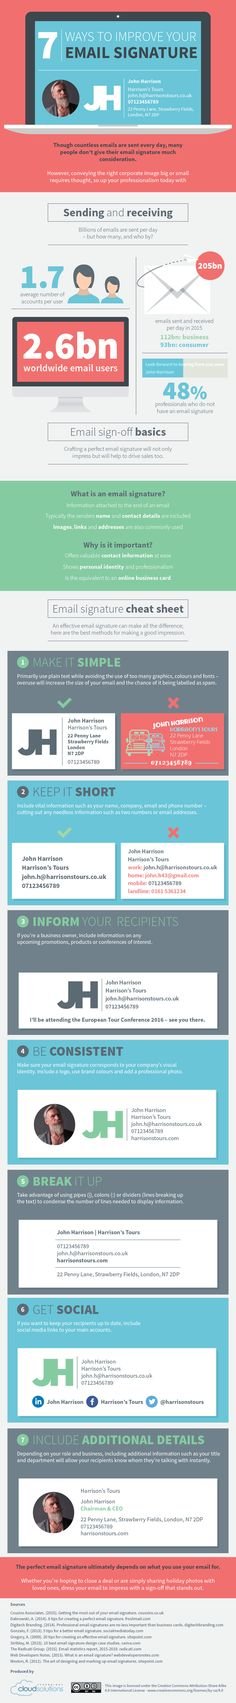 How to Create the Perfect Email Signature [Infographic] - https://technnerd.com/how-to-create-the-perfect-email-signature-infographic/?utm_source=PN&utm_medium=Tech+Nerd+Pinterest&utm_campaign=Social